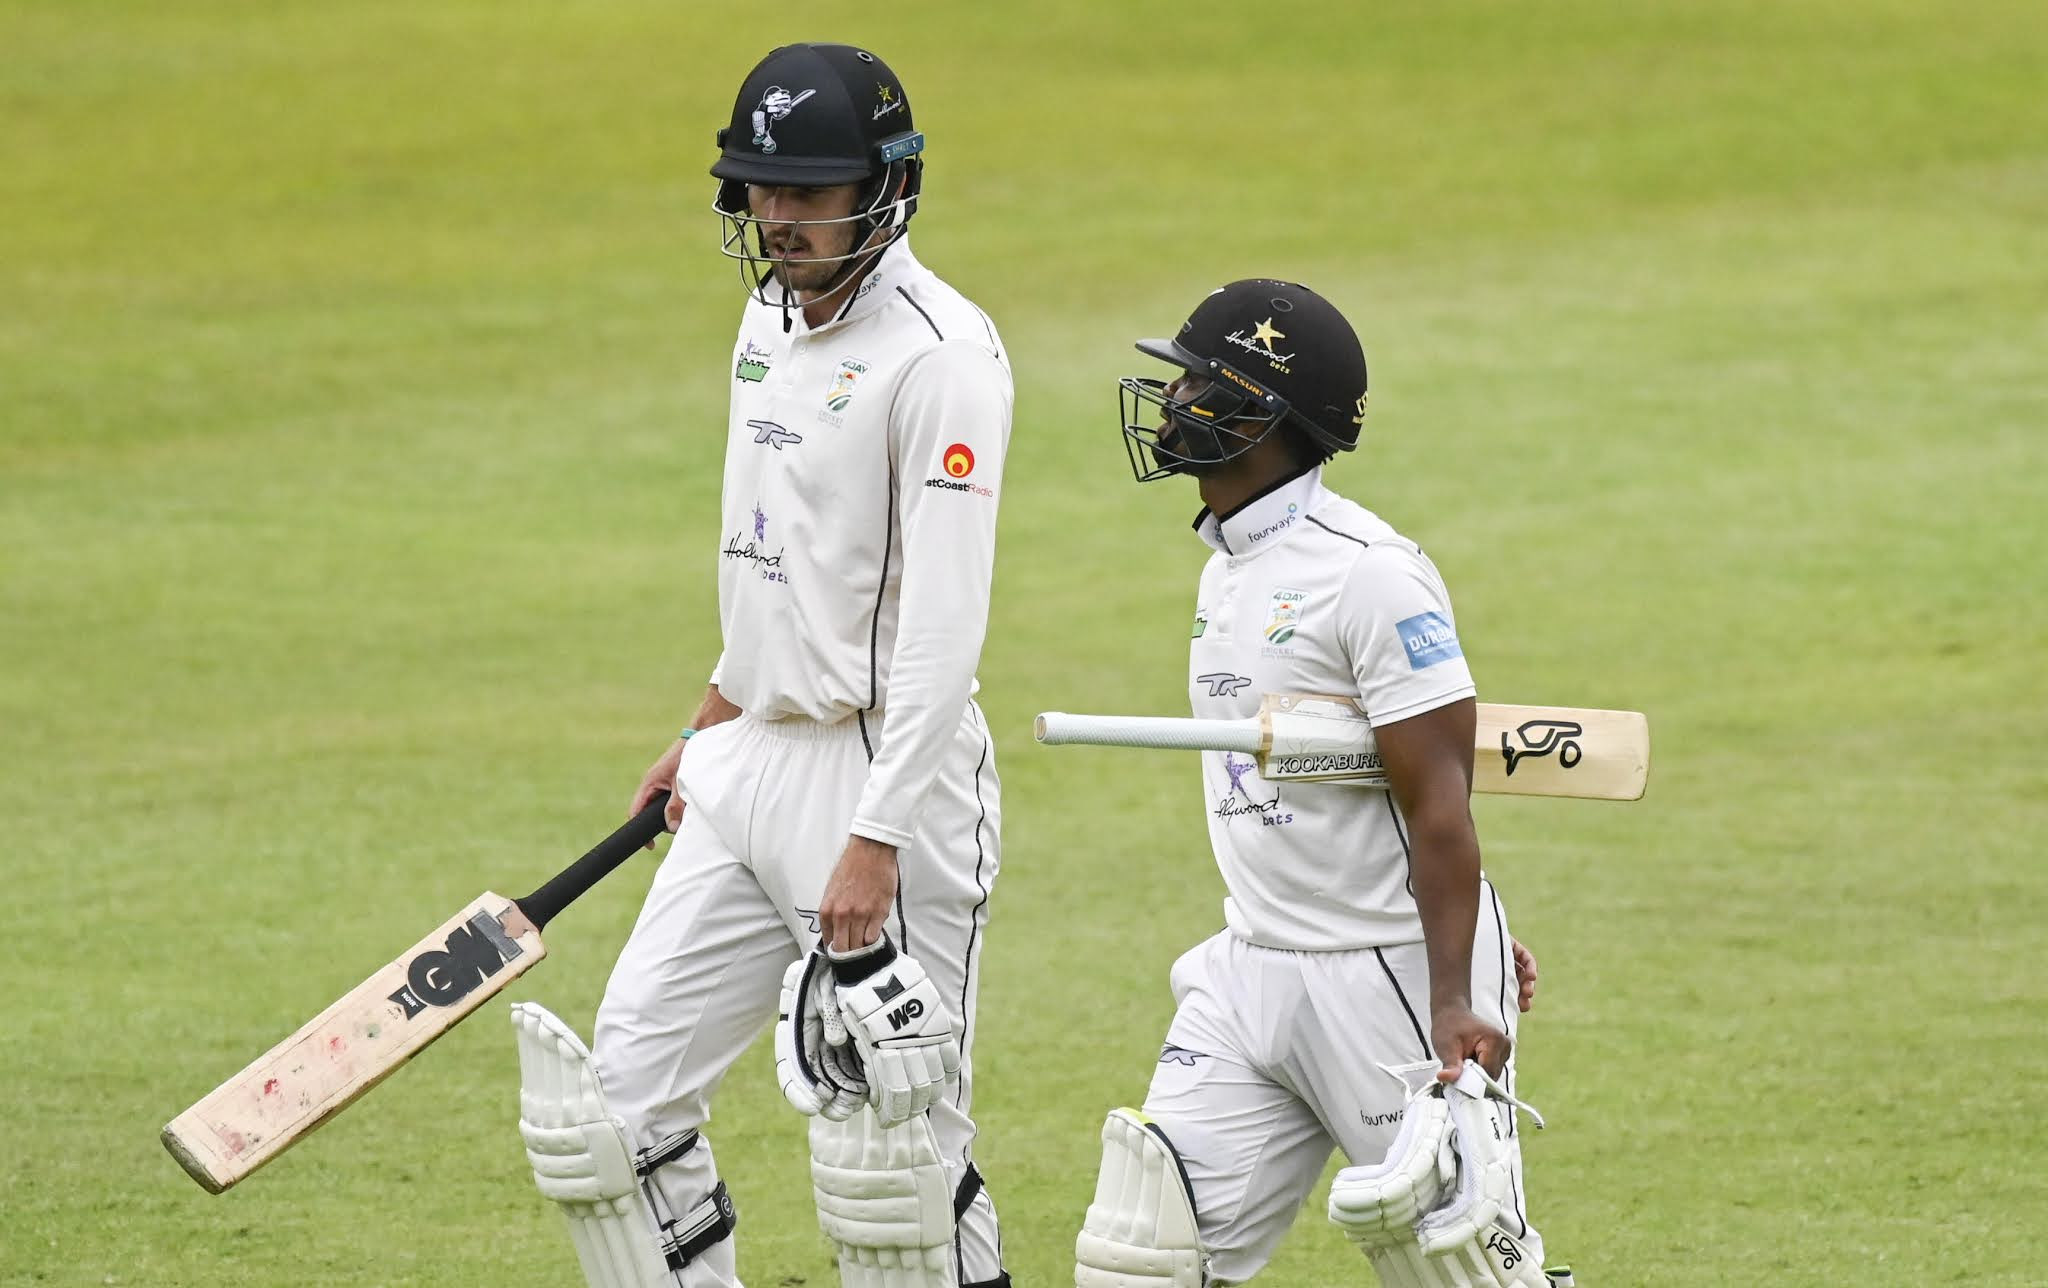 Dolphins hampered by bad light at Kingsmead